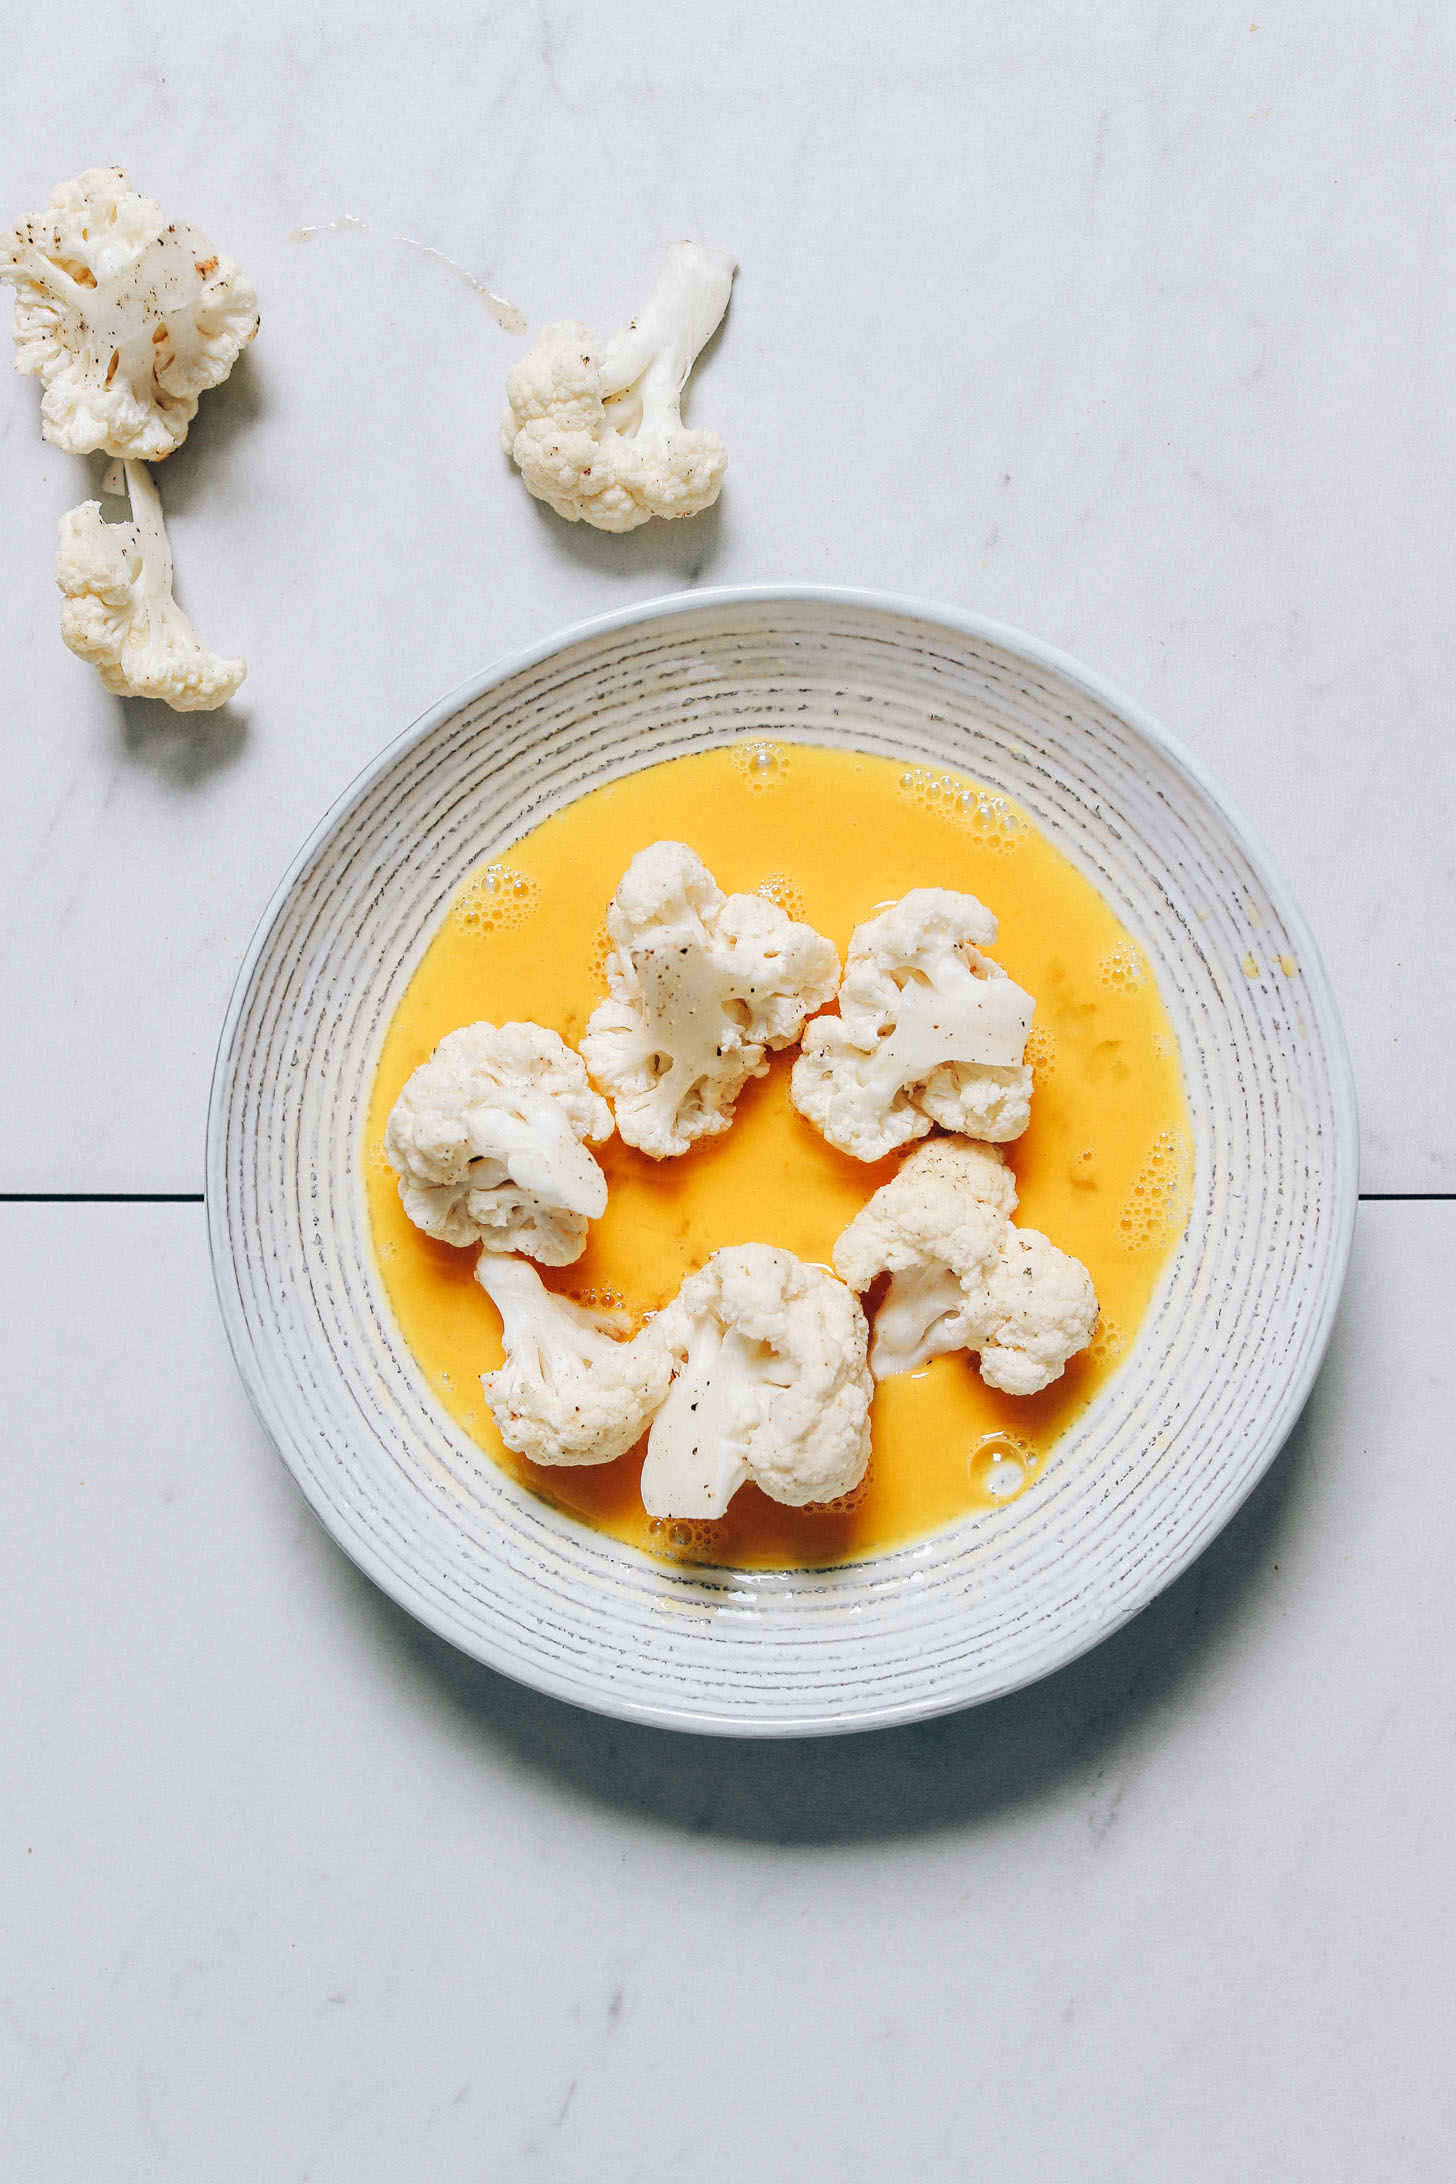 Cauliflower florets in a bowl of raw egg to help the cashew batter stick